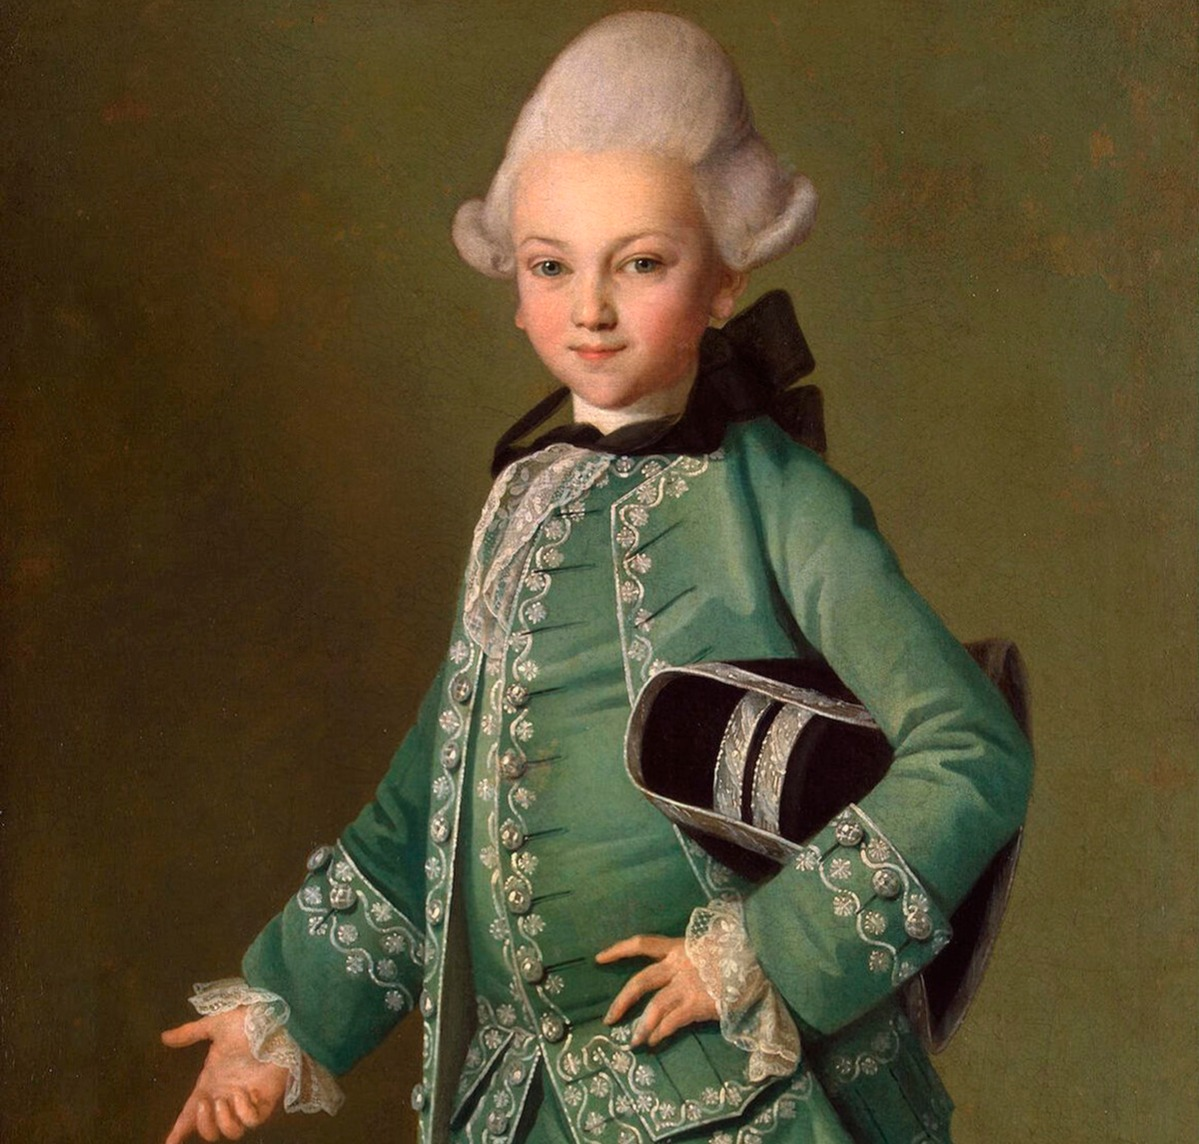 Portrait of Count Alexei Bobrinsky as a Child', 1769. Christineck, Carl Ludwig Johann (1732/3-1792/4). Found in the collection of the State Hermitage, St. Petersburg.